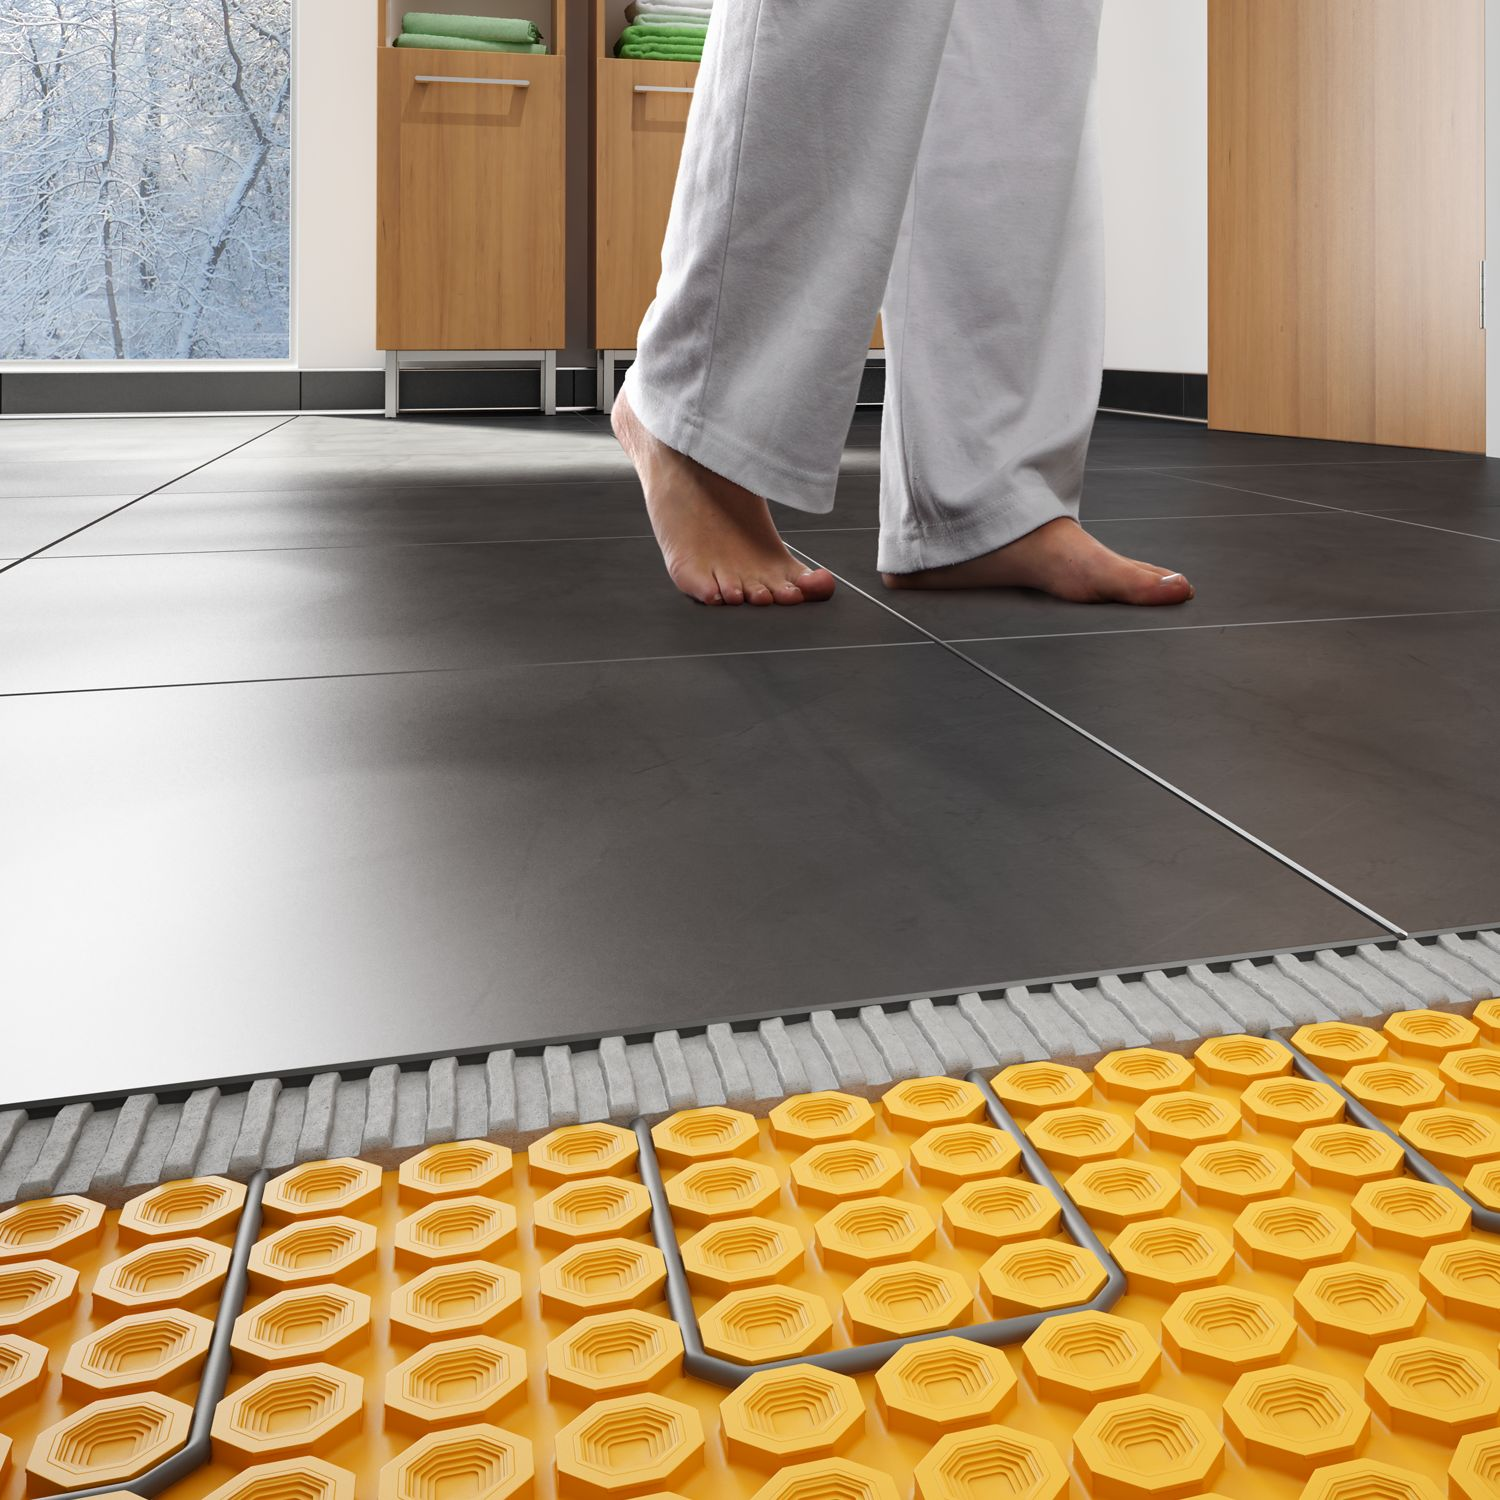 Heating tile floors